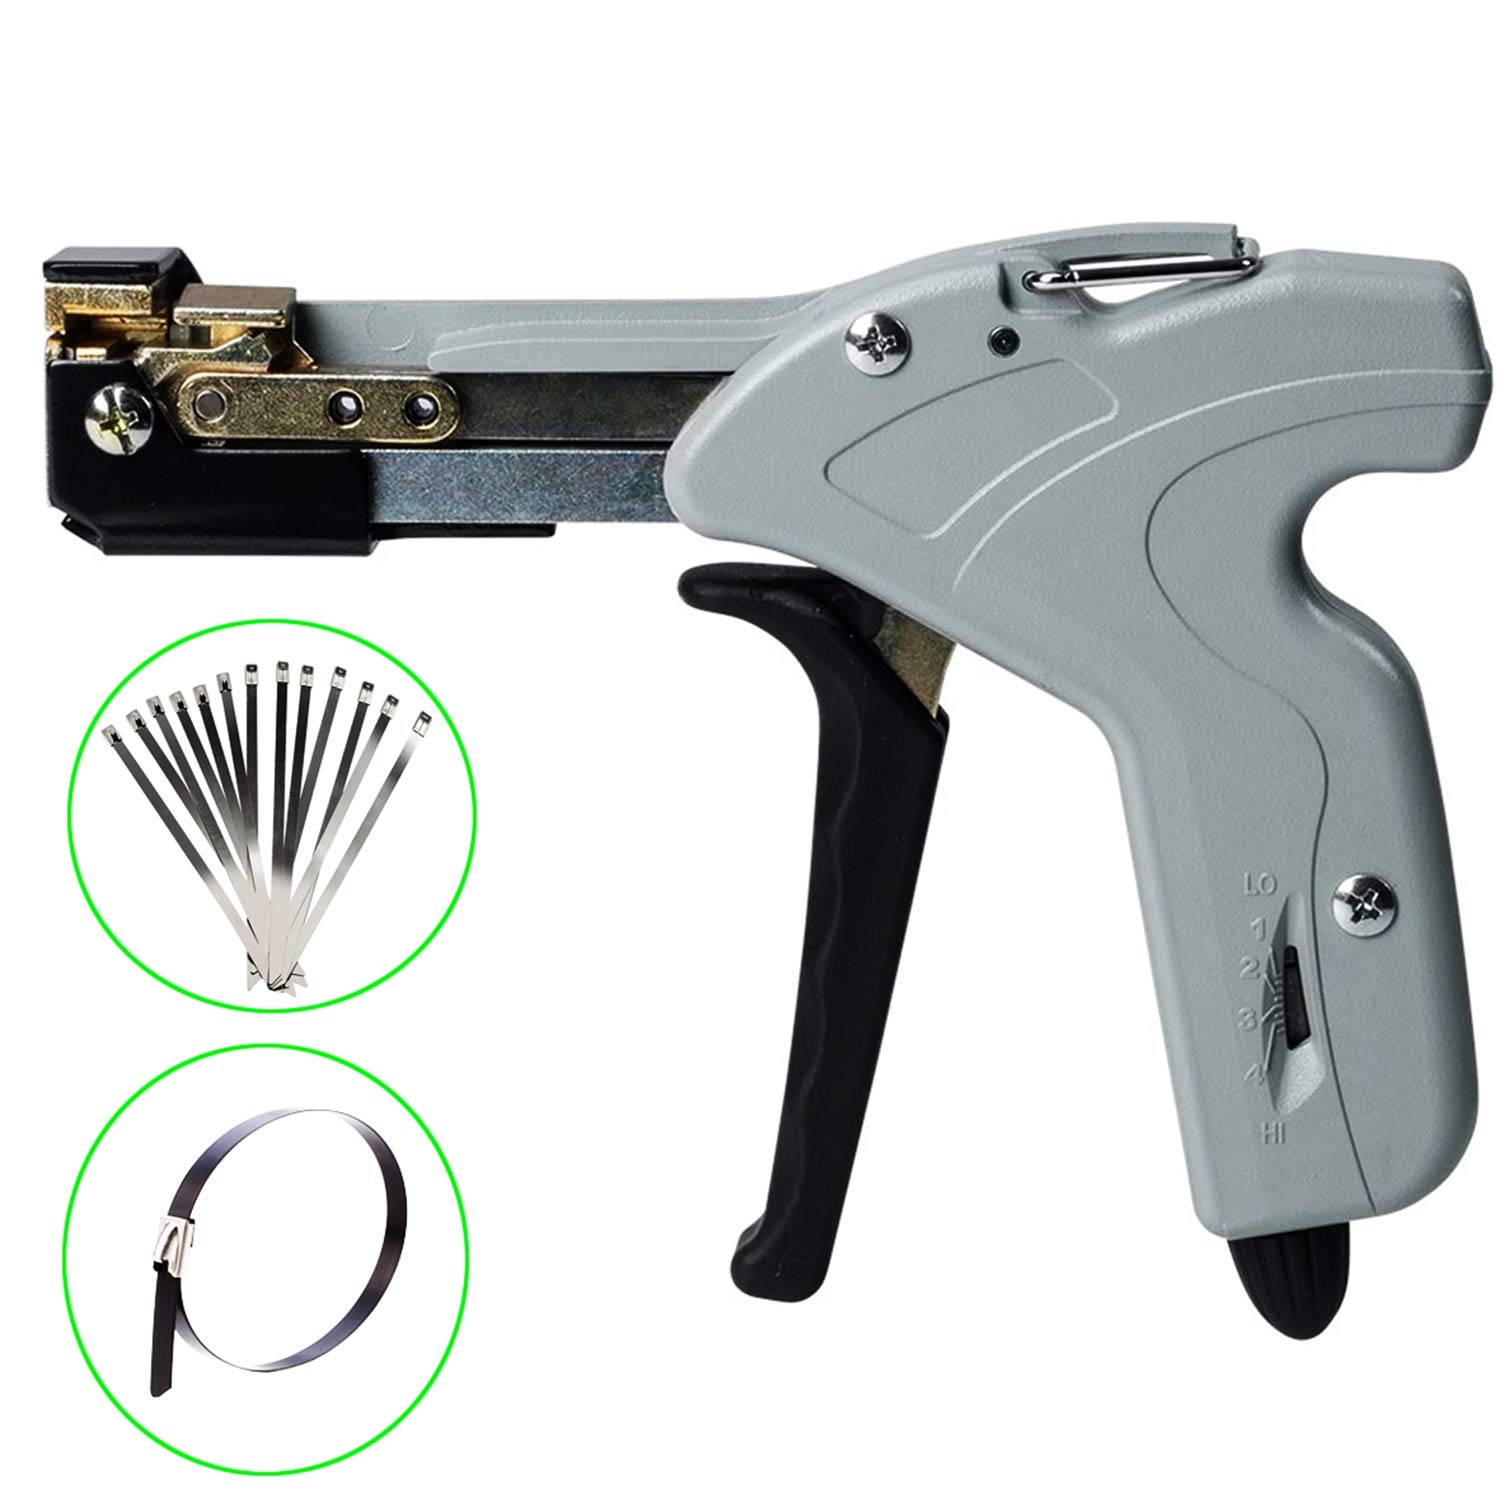 Knoweasy Stainless Steel Cable Tie Gun for Stainless Steel Cable Ties,Stainless Cable Tie Tool